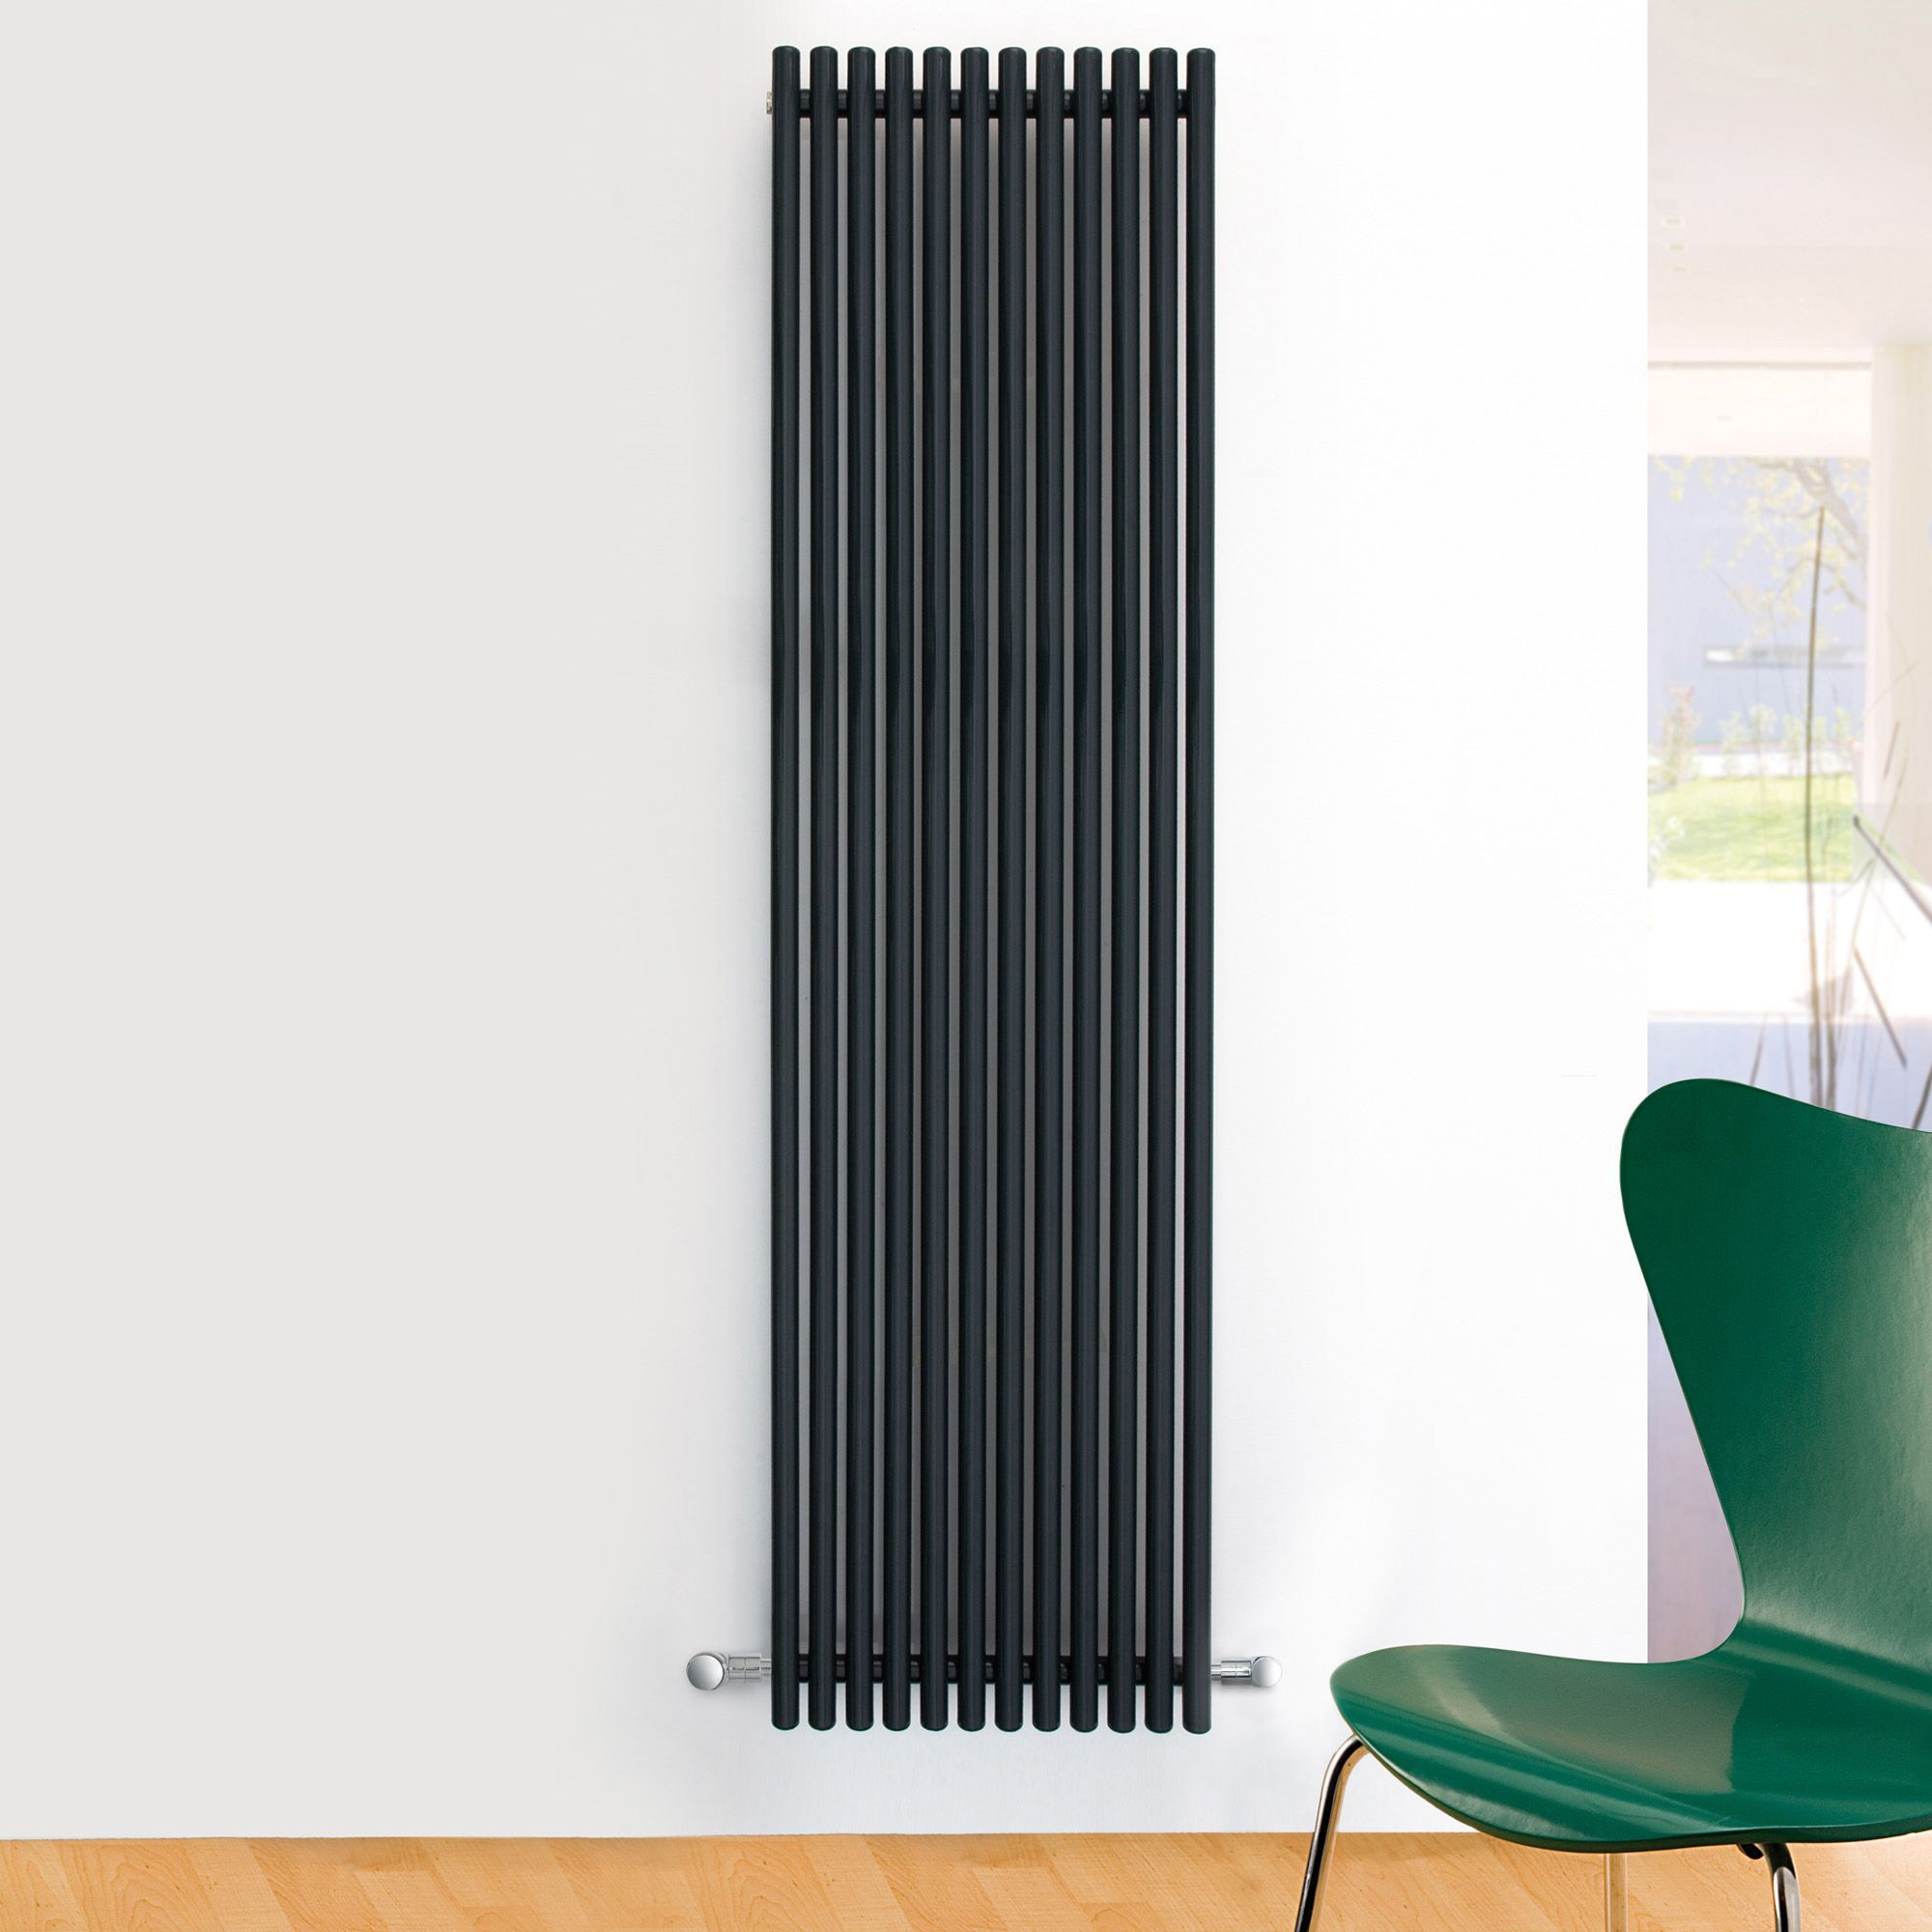 Ximax Supra Vertical Radiator Anthracite (H)1500 mm (W)470